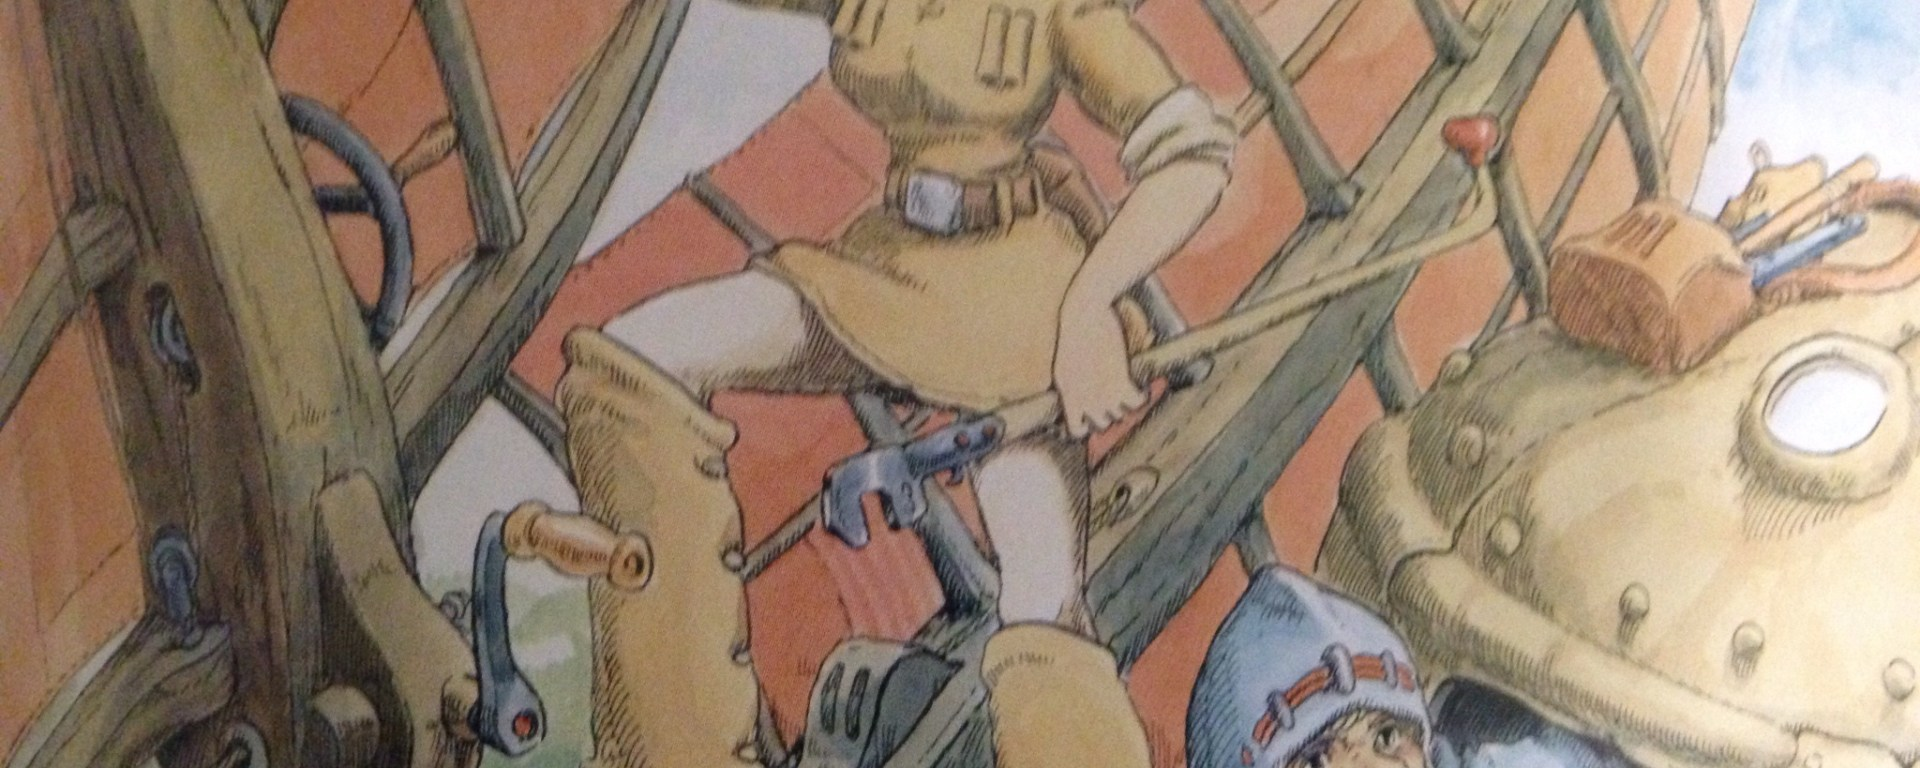 Nausicaa of the Valley of the Wind artwork